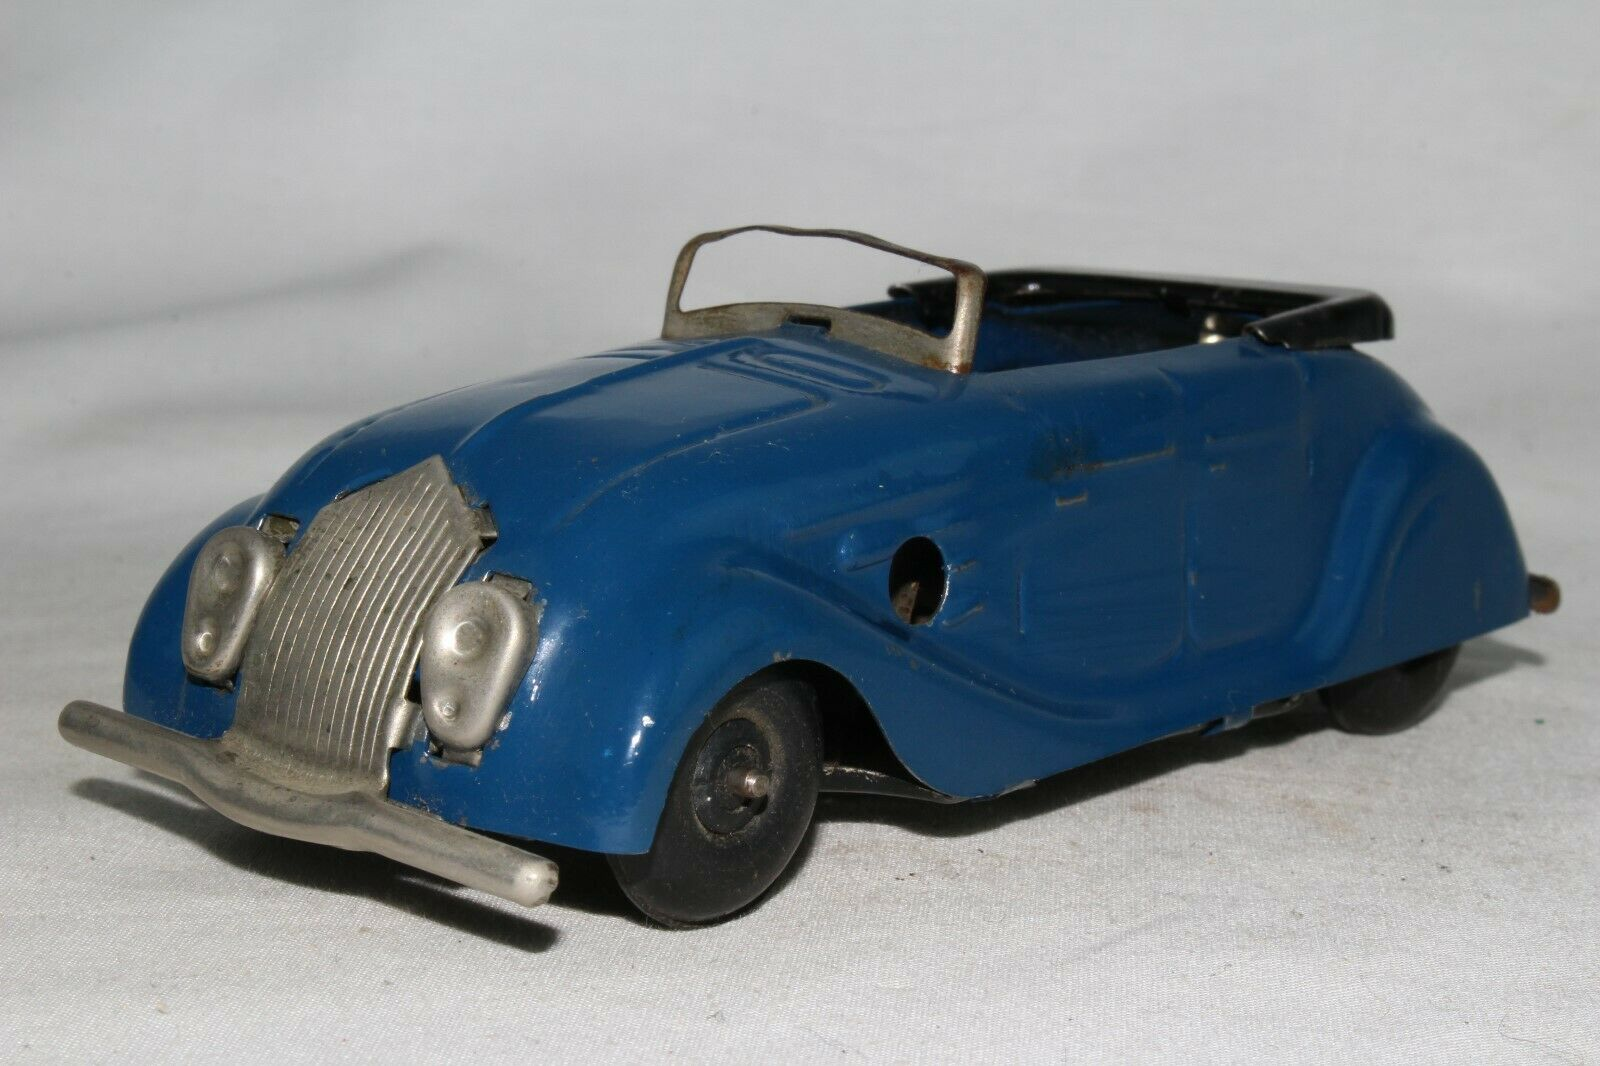 Triang Minic 588ms Chrylser Luftstrom Cabrio Coupe, Original